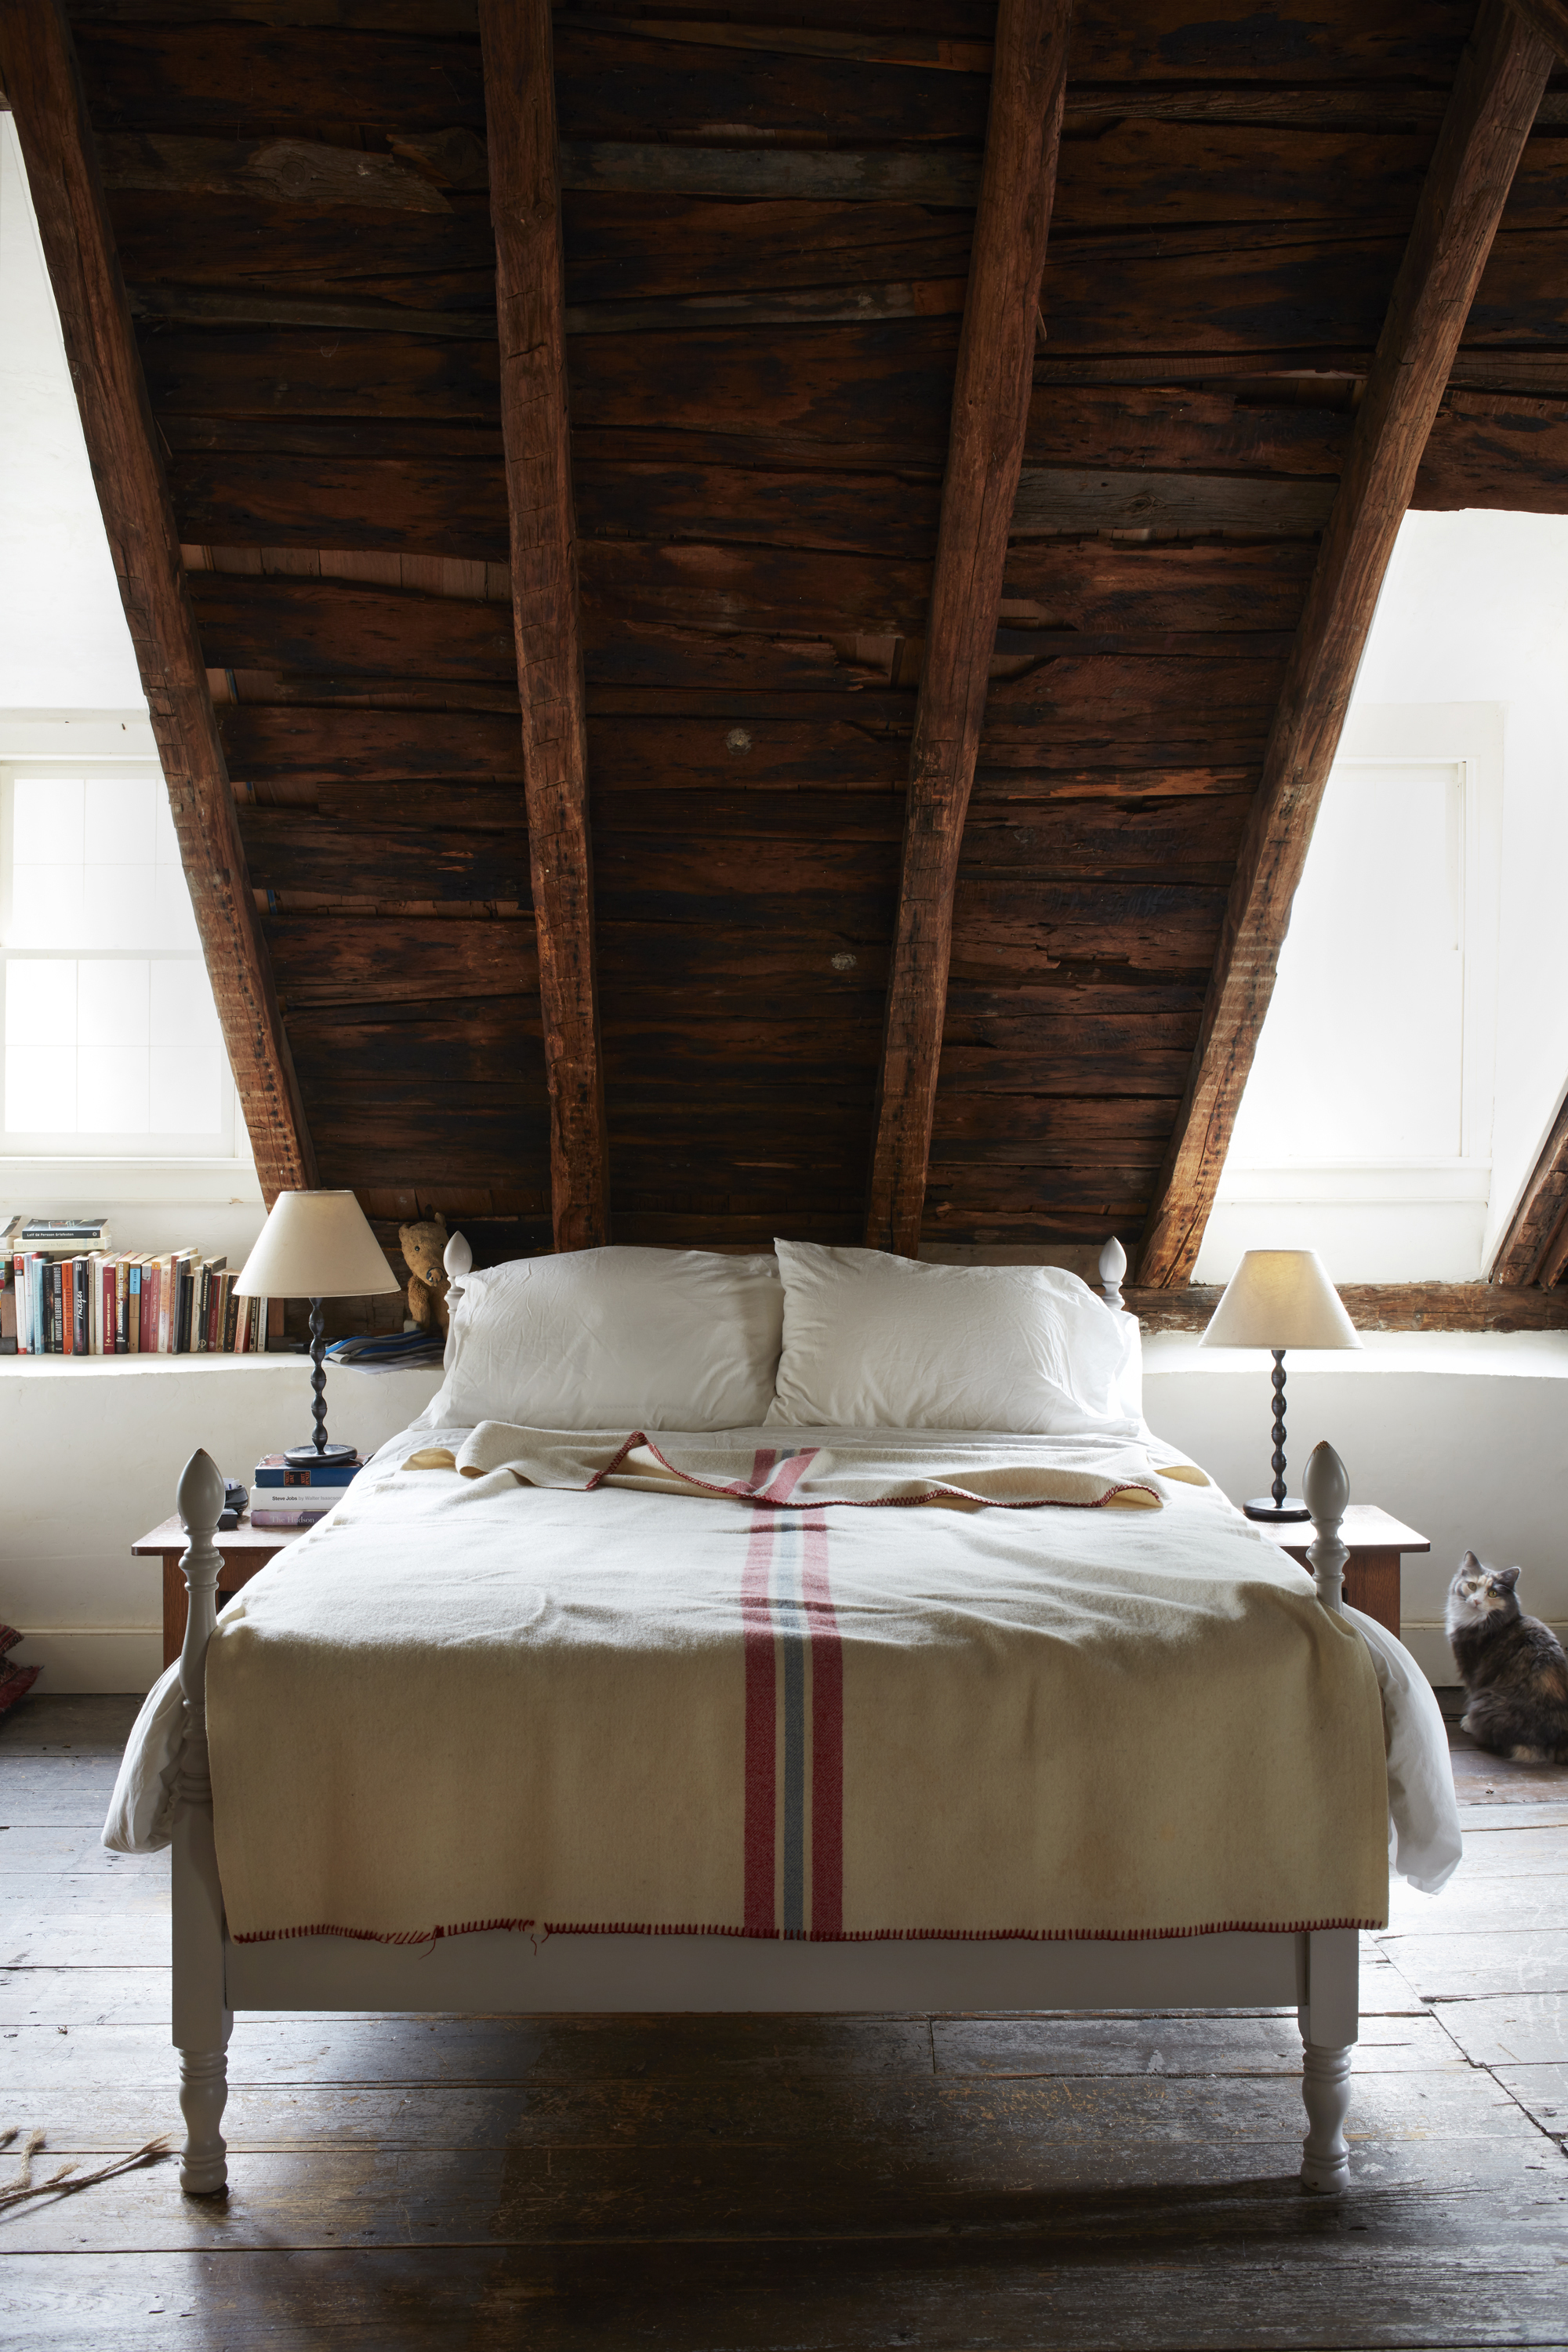 A low bed is tucked into an eave beneath a steeply pitched roof.